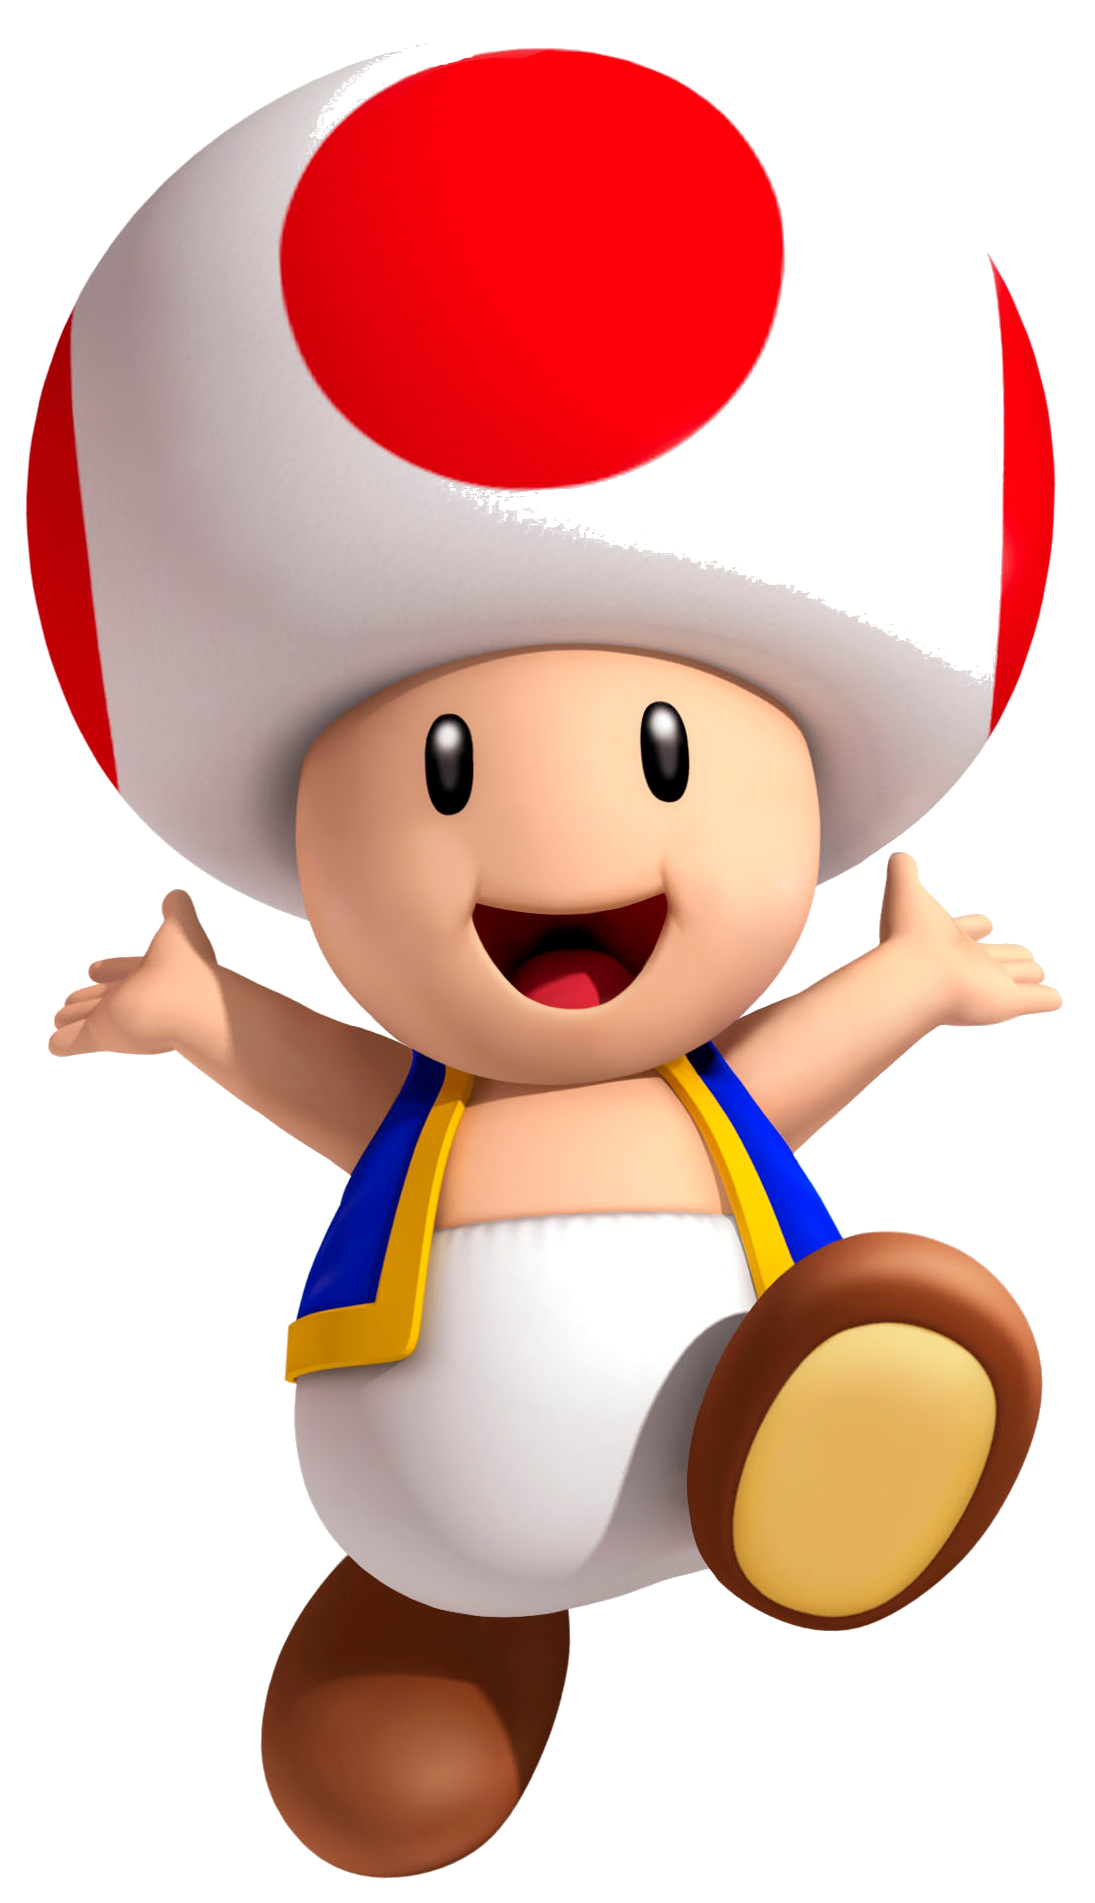 Toad Artwork - Super Mario 3D